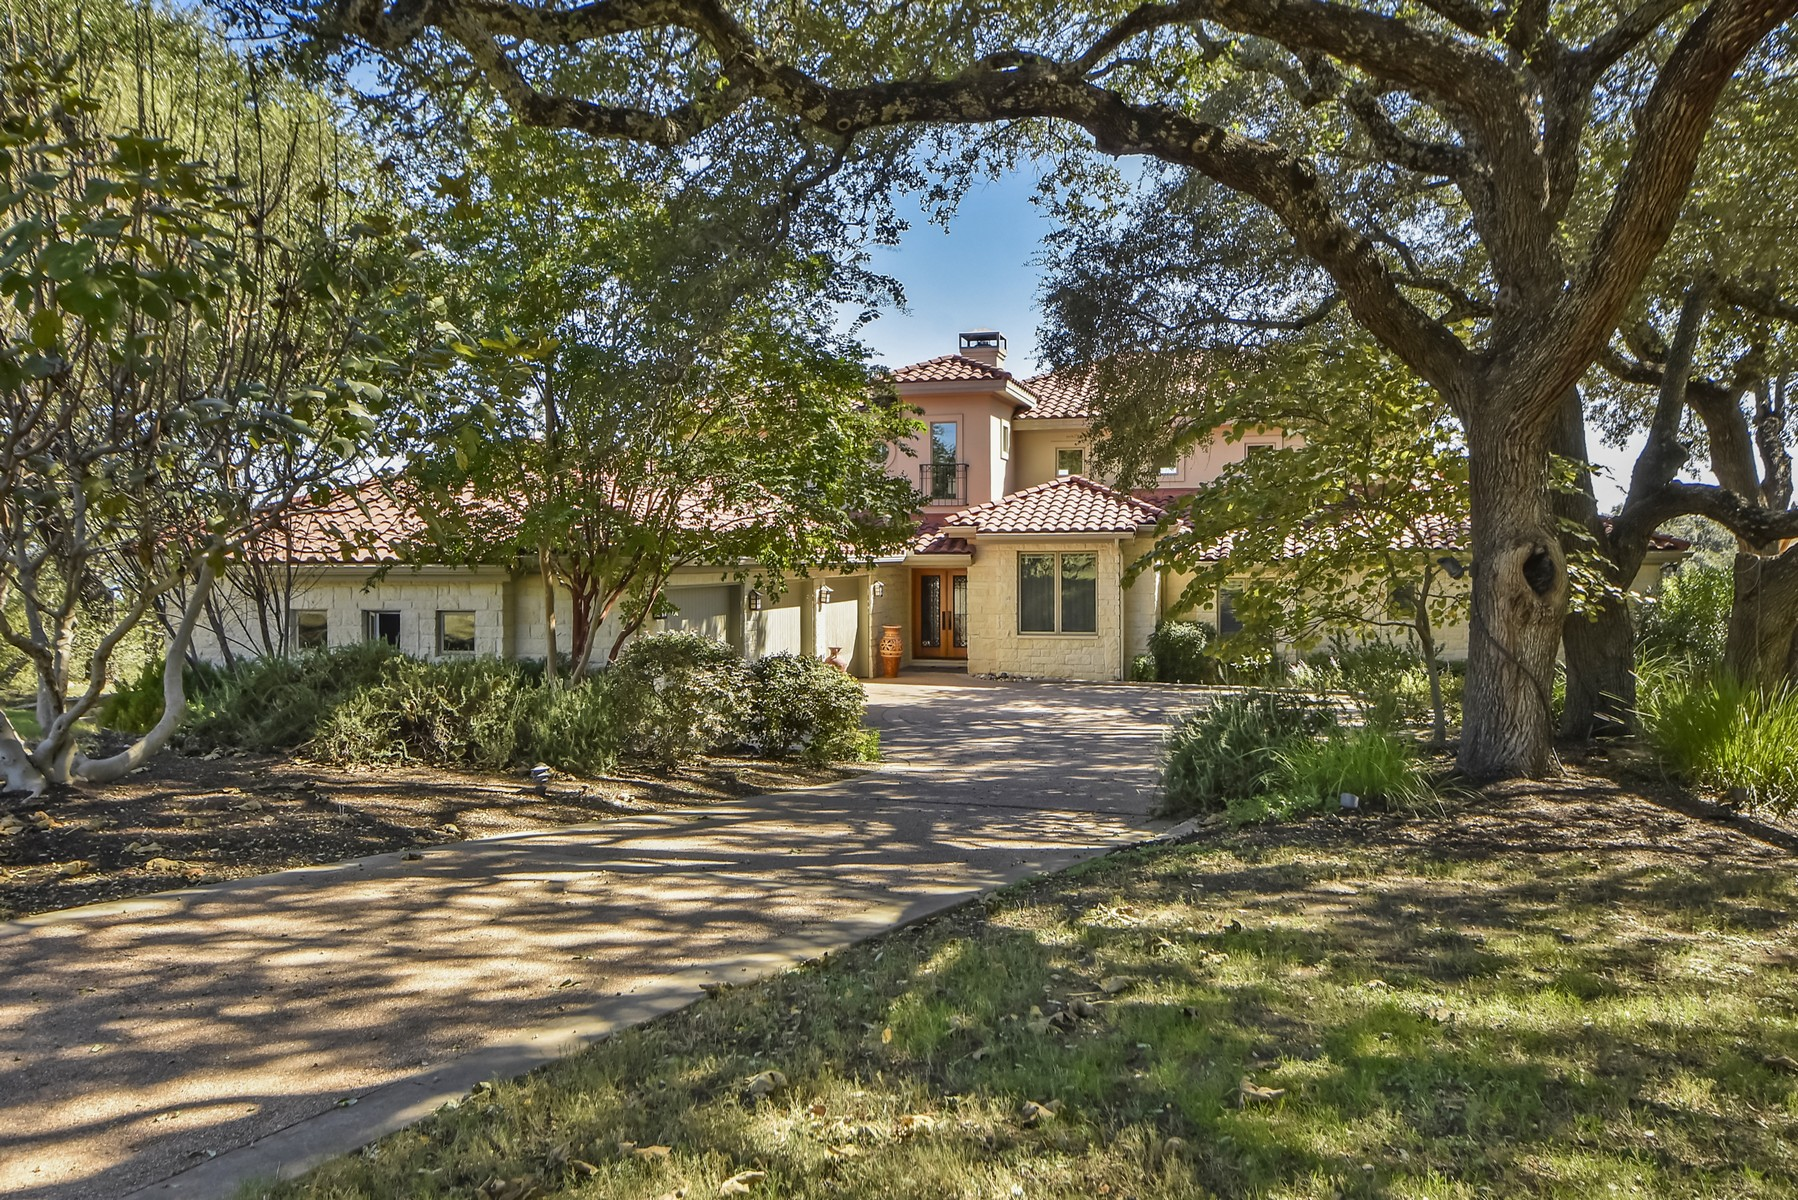 Maison unifamiliale pour l Vente à Lake Travis Oasis 27512 Waterfall Hill Pkwy Spicewood, Texas, 78669 États-Unis